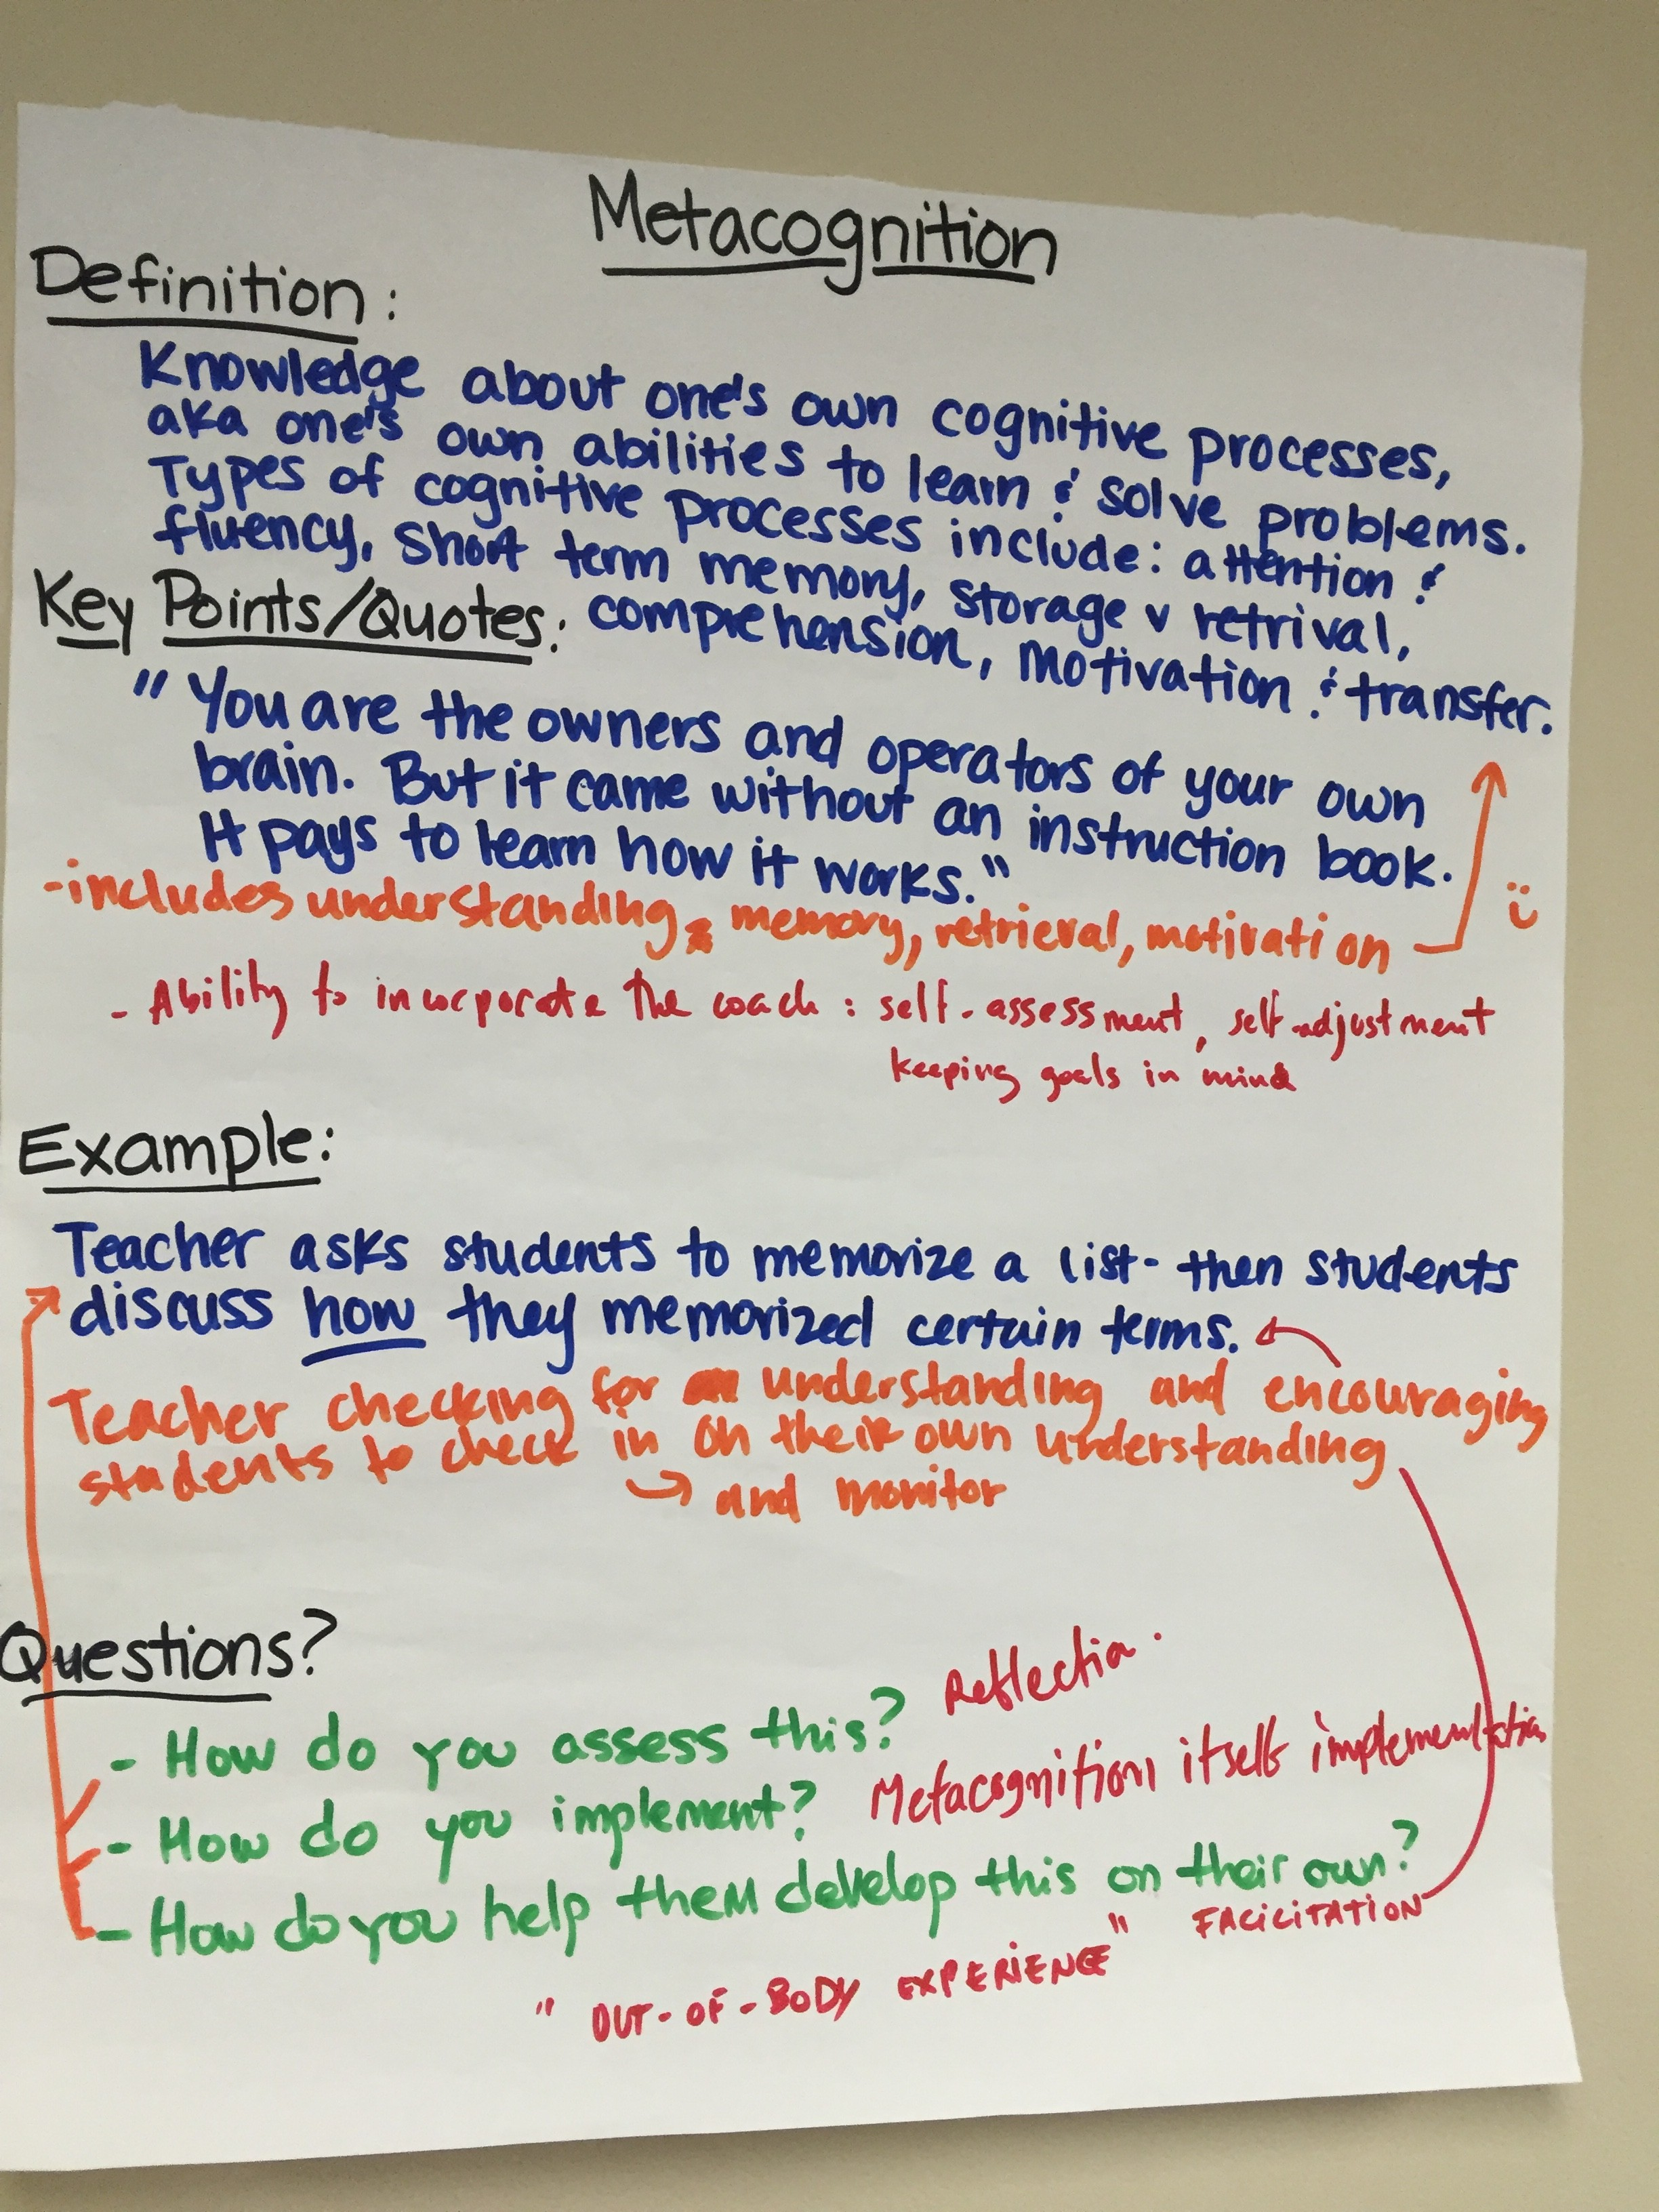 Metacognition+Poster